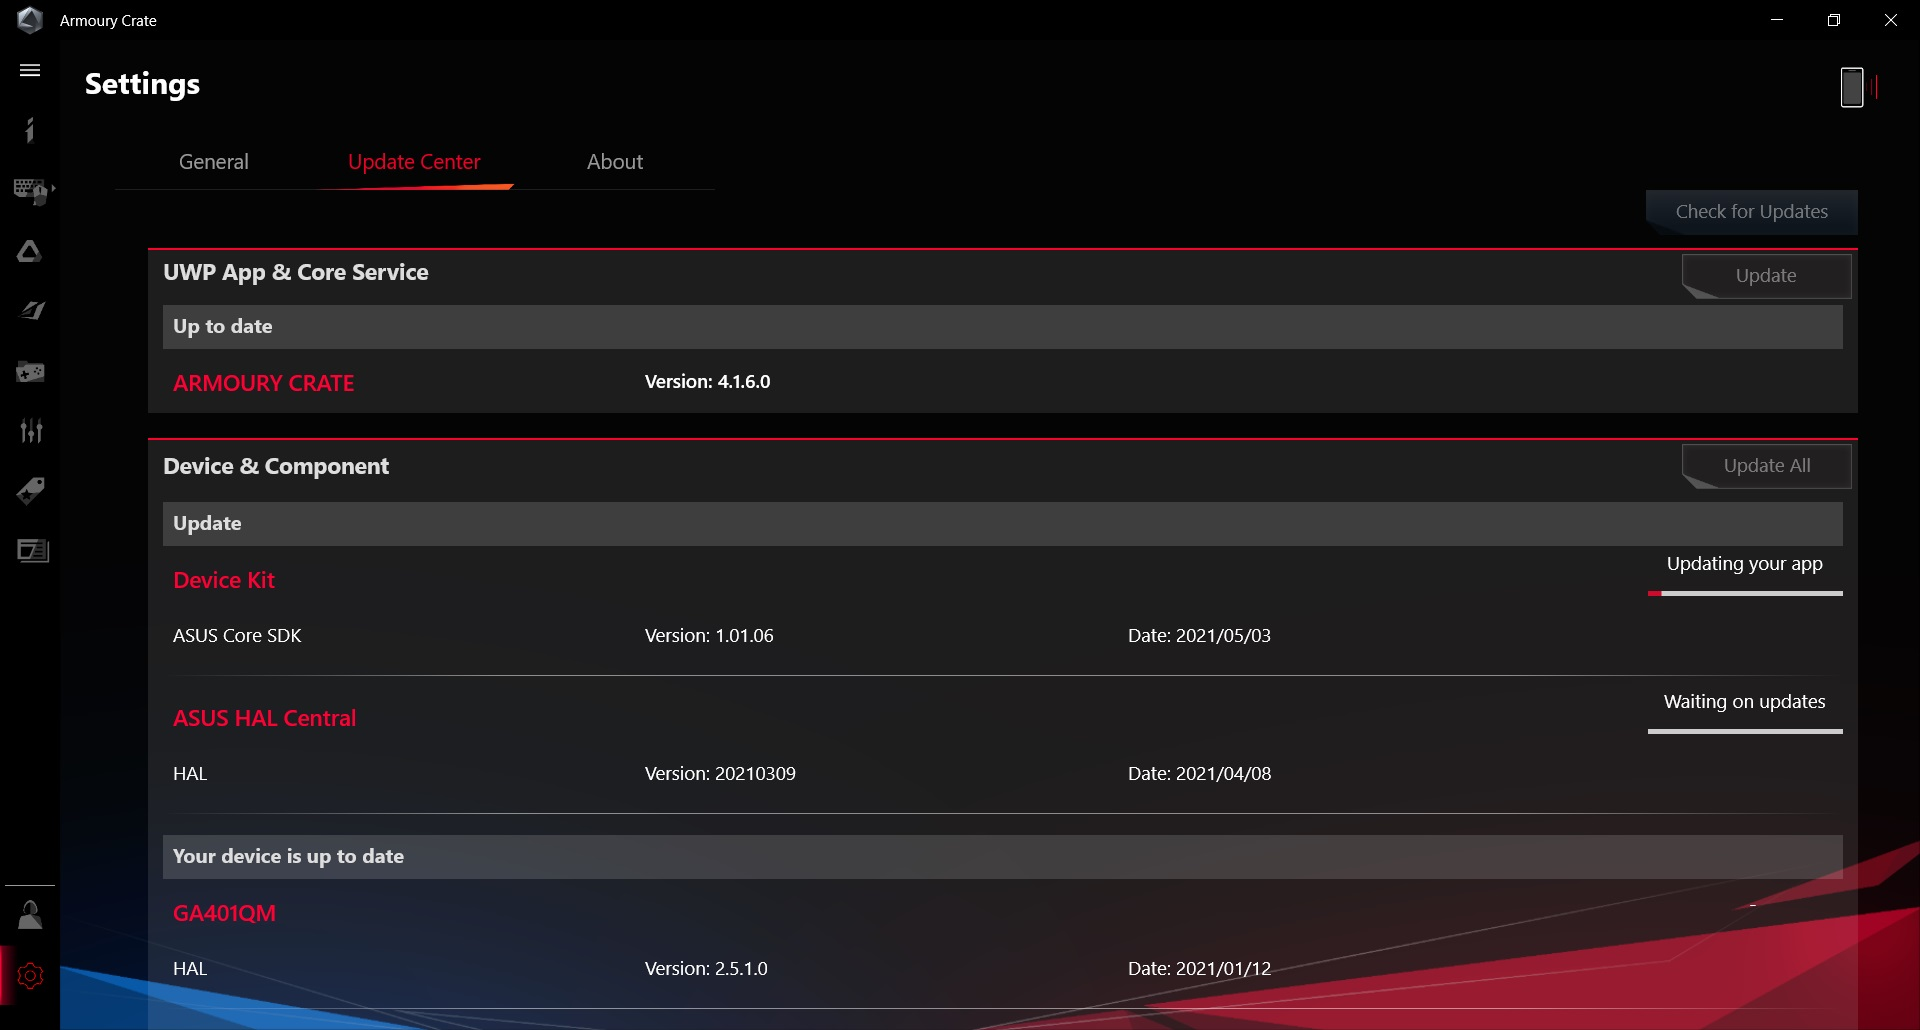 rog zephyrus g14 armoury crate update center